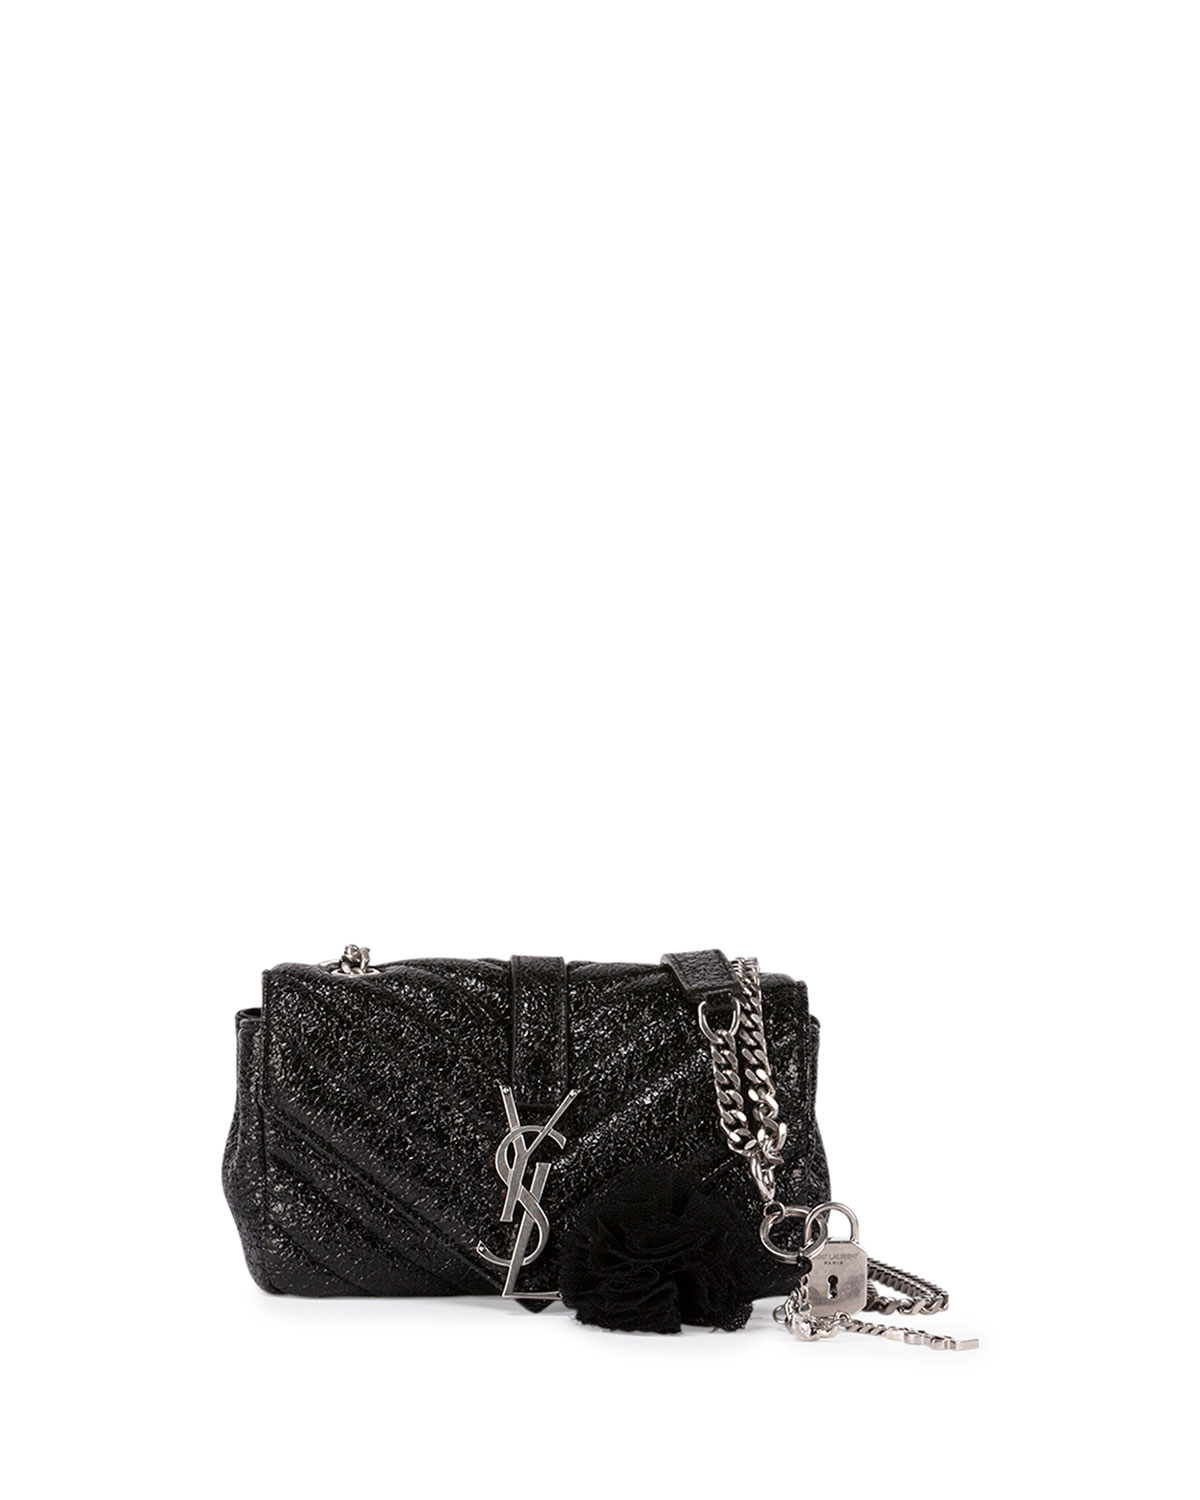 634623a61d Saint LaurentMonogram College Small Crinkle Patent Punk Chains Crossbody